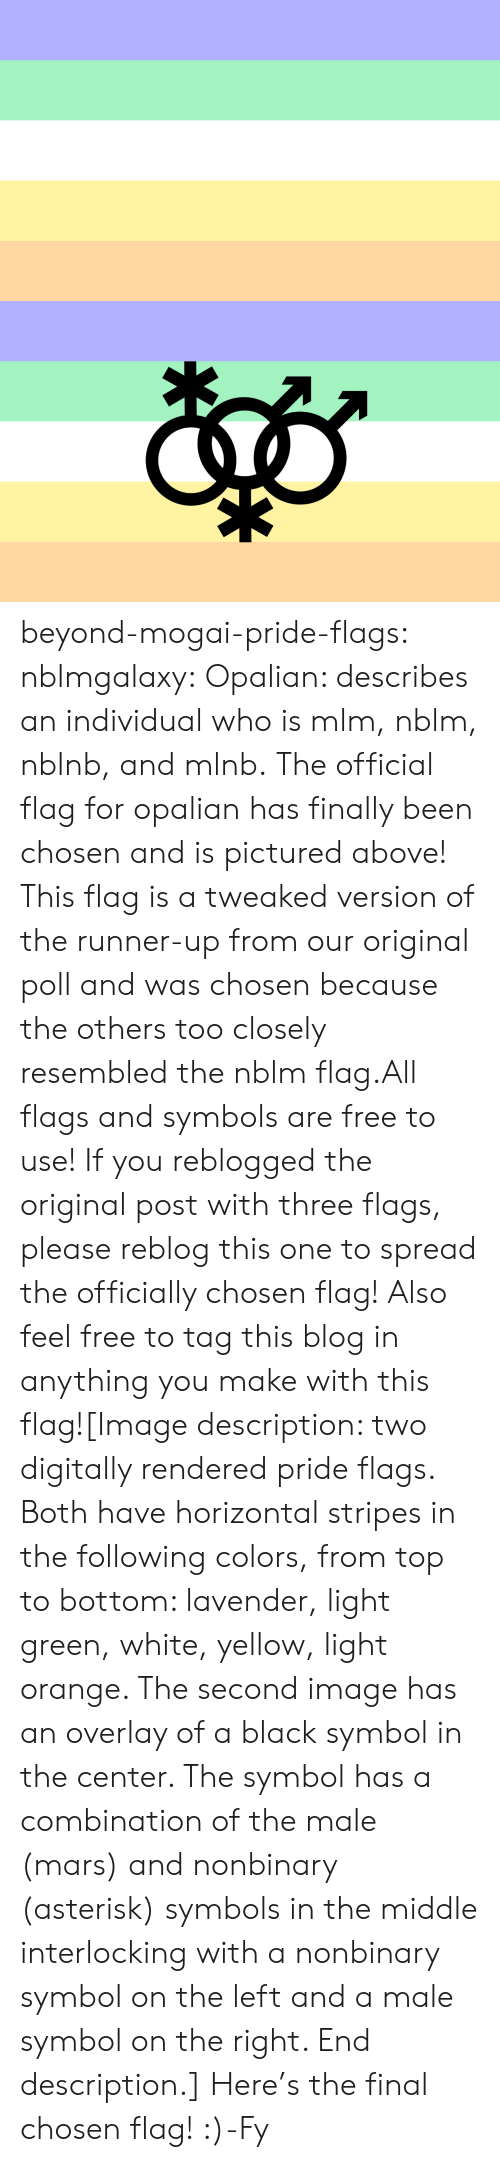 Pride Flags: beyond-mogai-pride-flags:  nblmgalaxy:  Opalian: describes an individual who is mlm, nblm, nblnb, and mlnb. The official flag for opalian has finally been chosen and is pictured above! This flag is a tweaked version of the runner-up from our original poll and was chosen because the others too closely resembled the nblm flag.All flags and symbols are free to use! If you reblogged the original post with three flags, please reblog this one to spread the officially chosen flag! Also feel free to tag this blog in anything you make with this flag![Image description: two digitally rendered pride flags. Both have horizontal stripes in the following colors, from top to bottom: lavender, light green, white, yellow, light orange. The second image has an overlay of a black symbol in the center. The symbol has a combination of the male (mars) and nonbinary (asterisk) symbols in the middle interlocking with a nonbinary symbol on the left and a male symbol on the right. End description.]  Here's the final chosen flag! :)-Fy